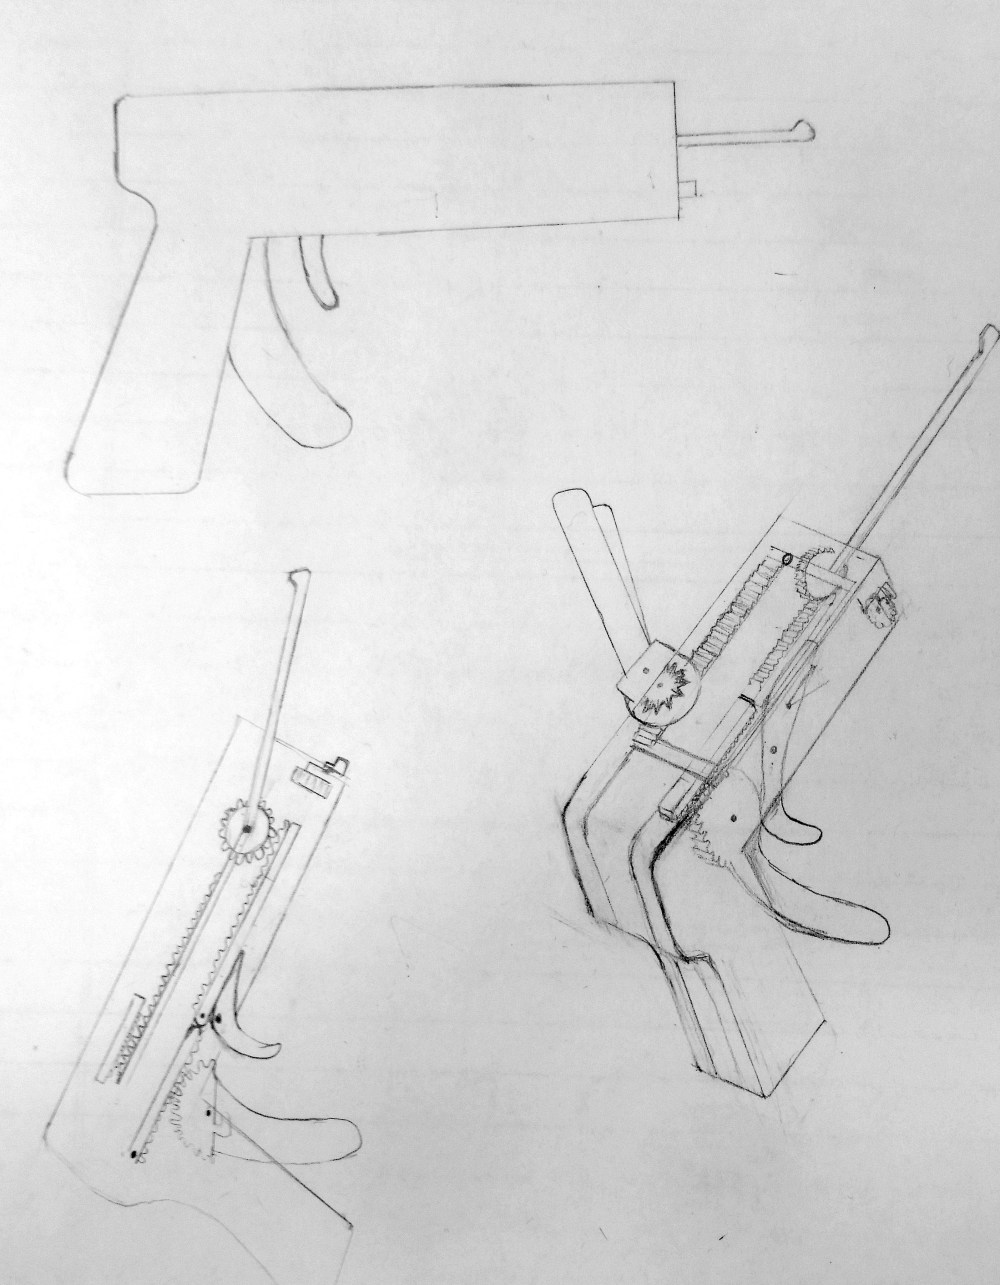 medium resolution of this project created a lock picking mechanism that can easily depress pins on a lock without needing much prior knowledge